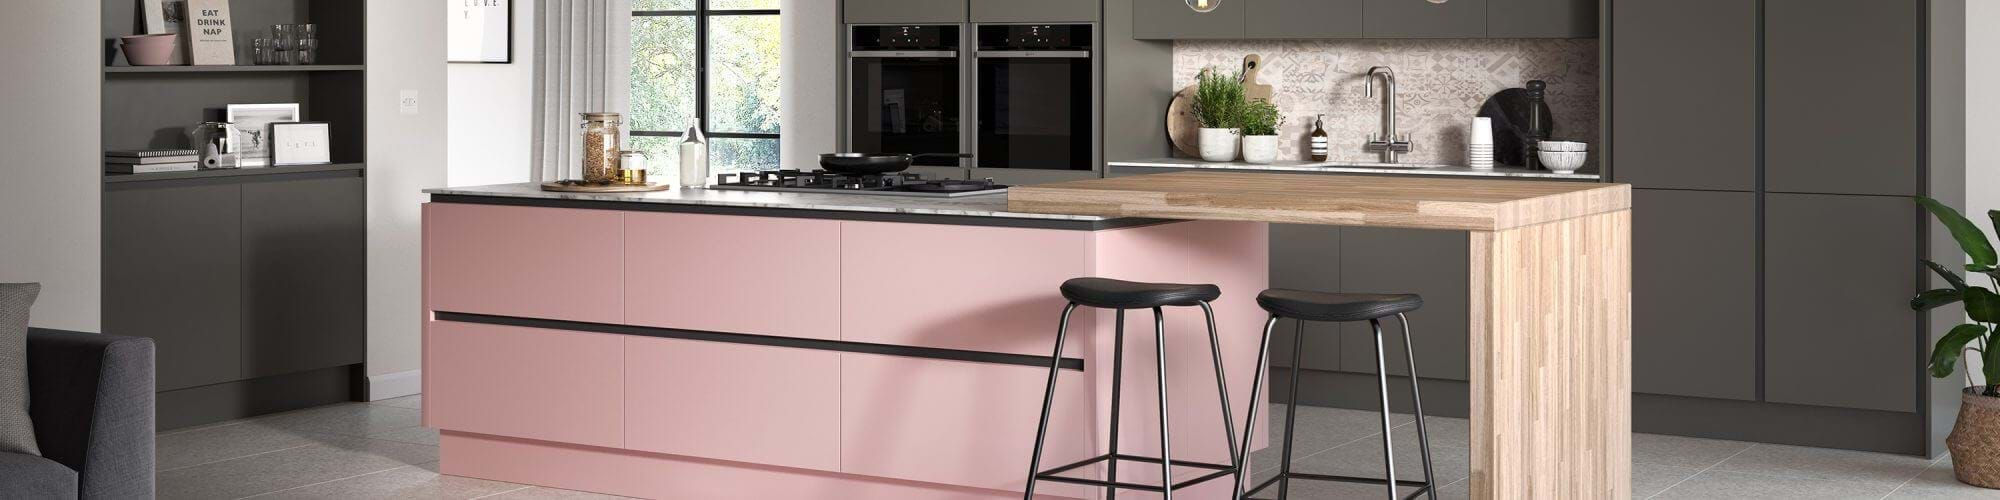 Sheraton Oblique kitchen with pink and grey Sheraton kitchen units and island